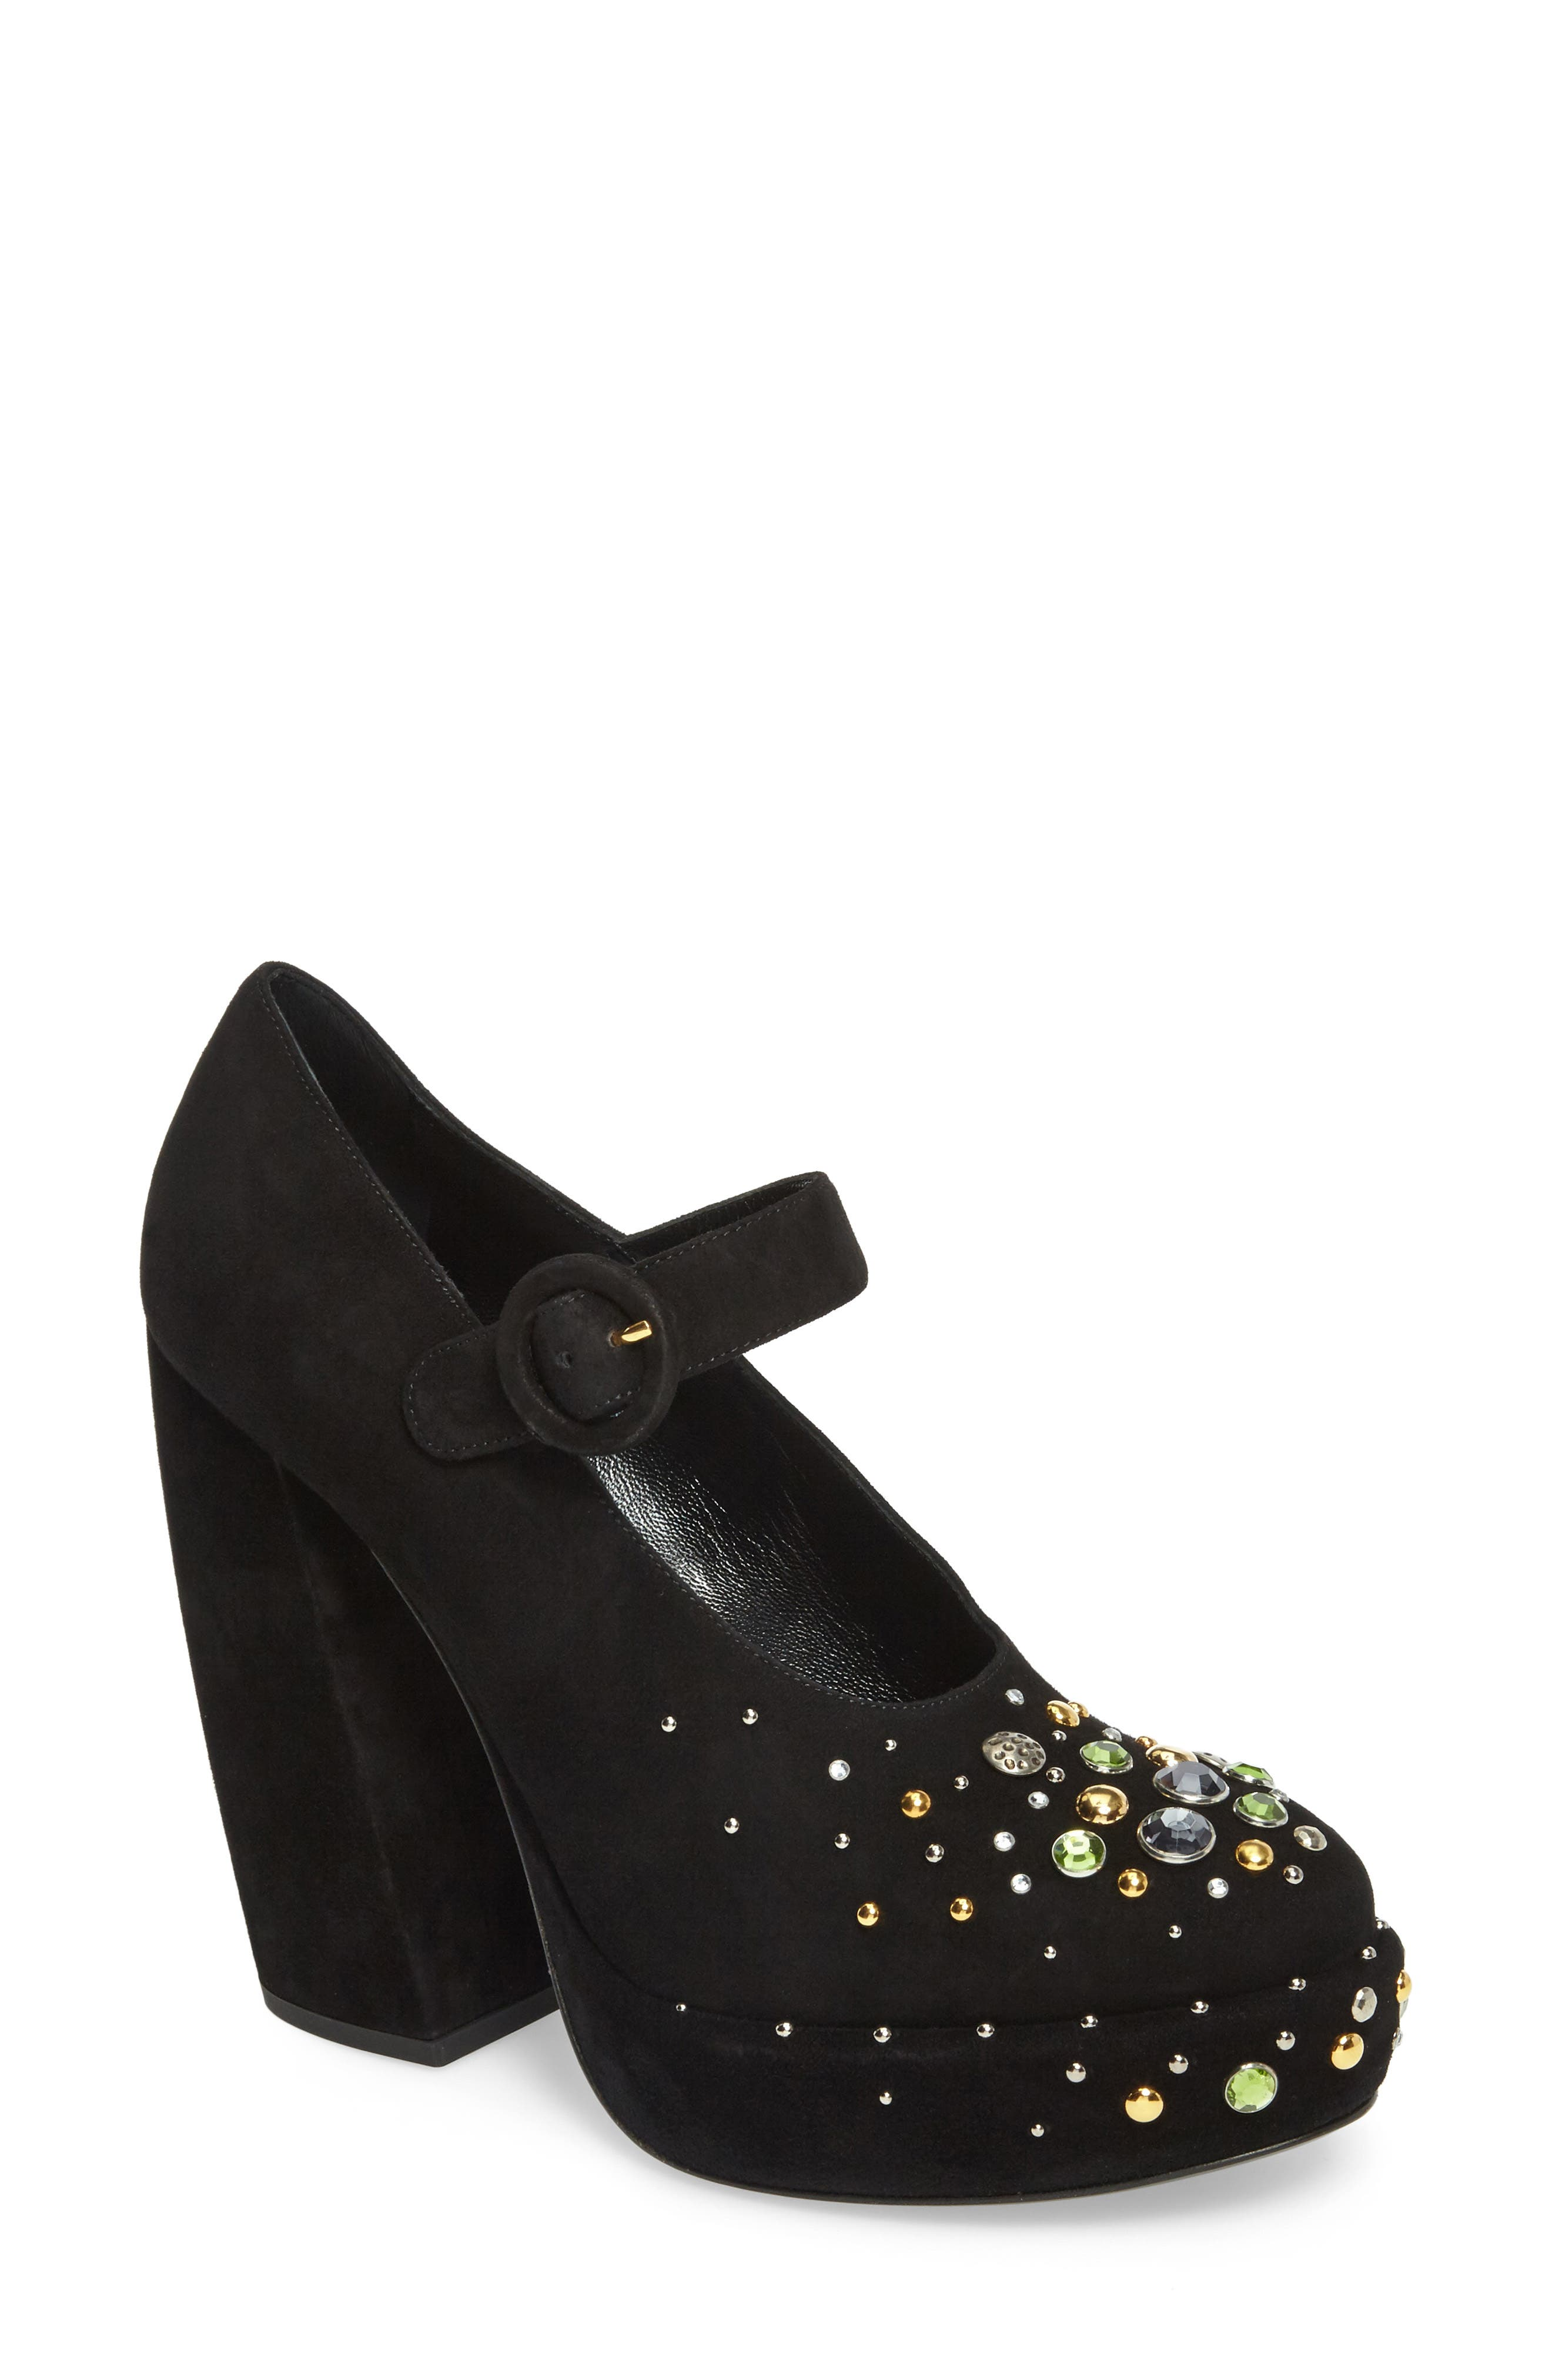 Prada Embellished Mary Jane Platform Pump (Women)